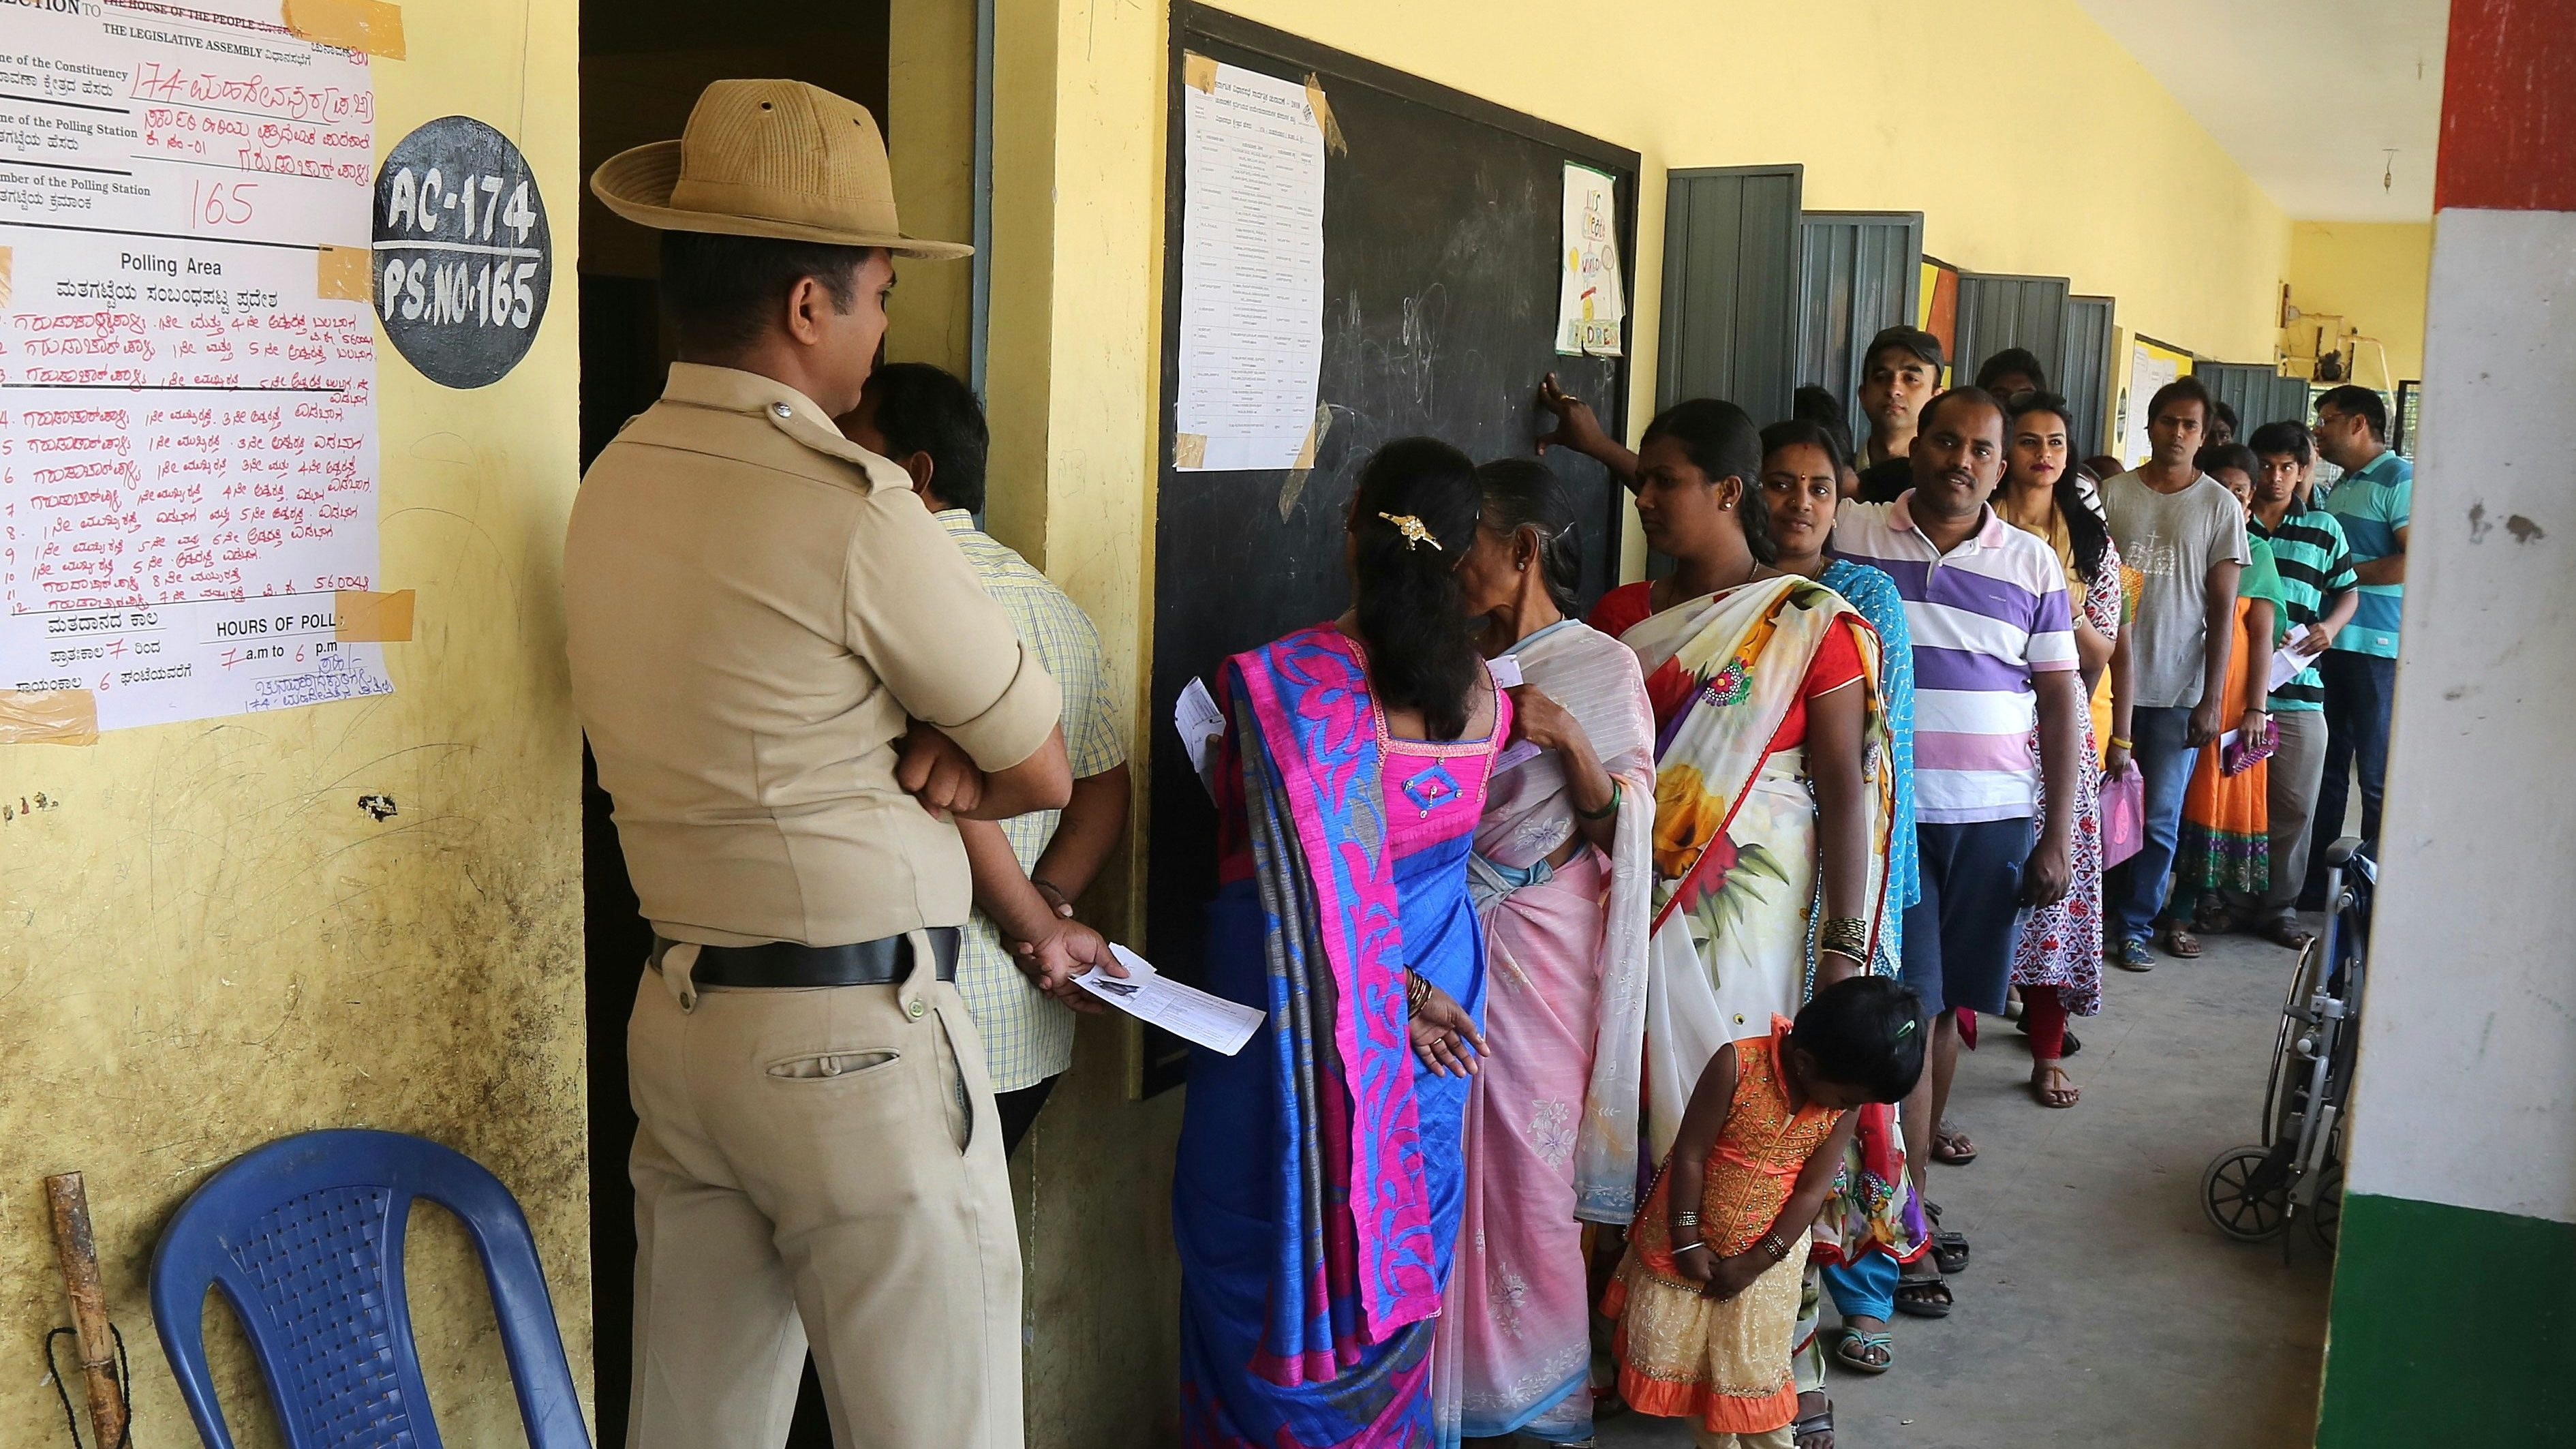 epa06729956 Indian voters wait to cast their votes at a polling station during the Karnataka Assembly Election in Bangalore, India, 12 May 2018. Voting began in the southwest Indian state of Karnataka on 12 May with more than 49 million people eligible to vote for the 222 Legislative Assembly constituencies. Results will be announced on 15 May.